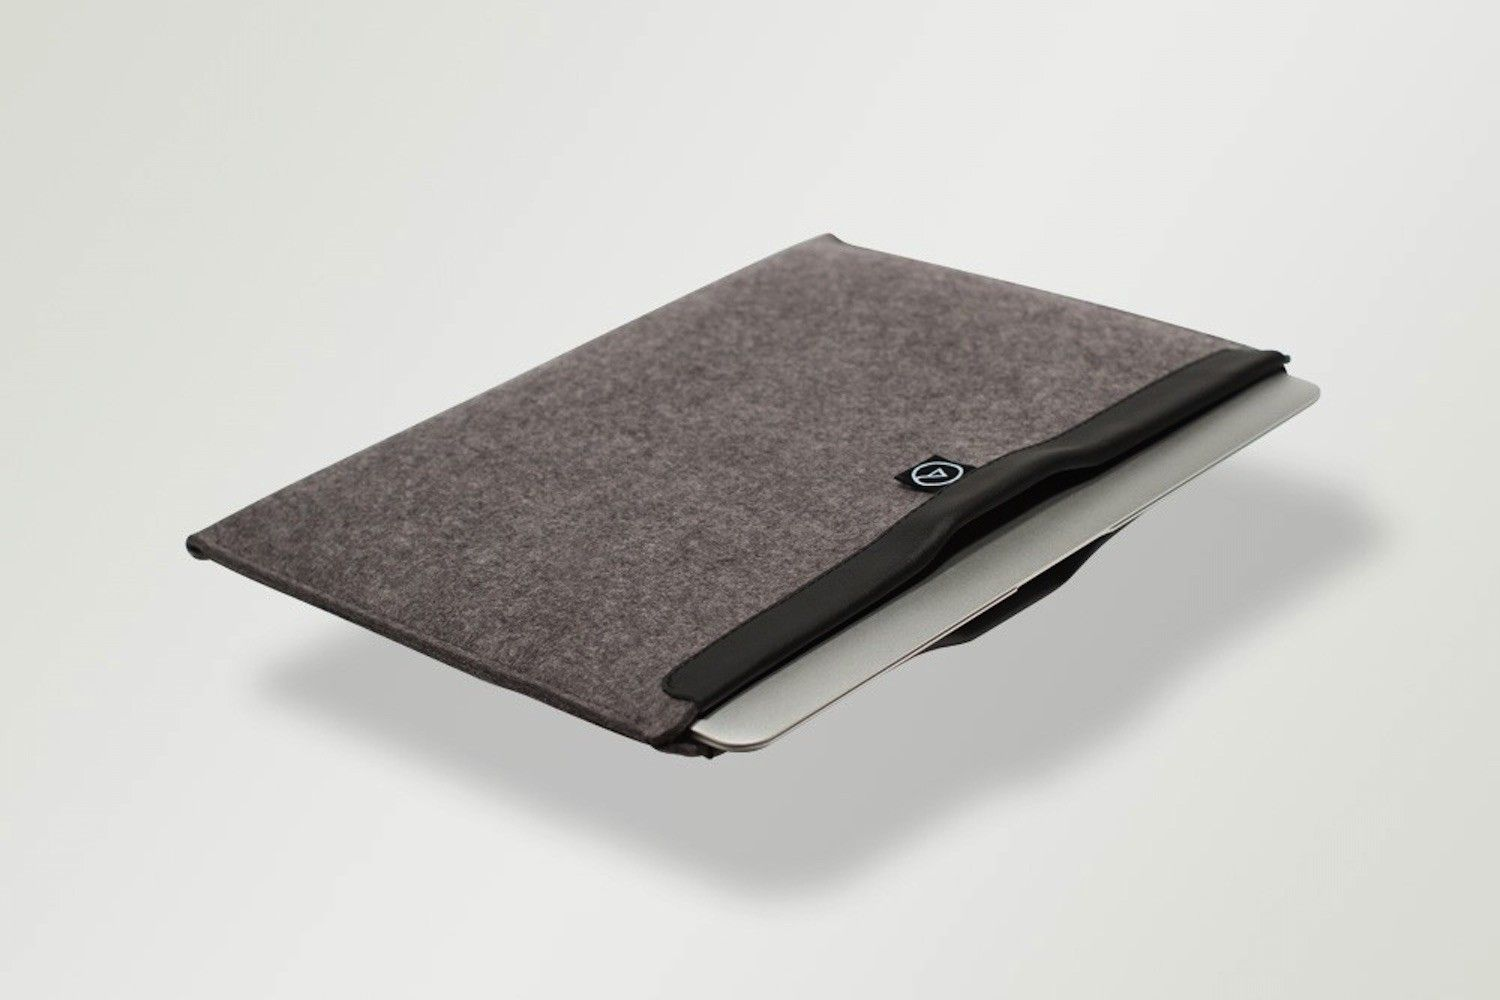 Keep your computer from getting scratched and get this cozy wool